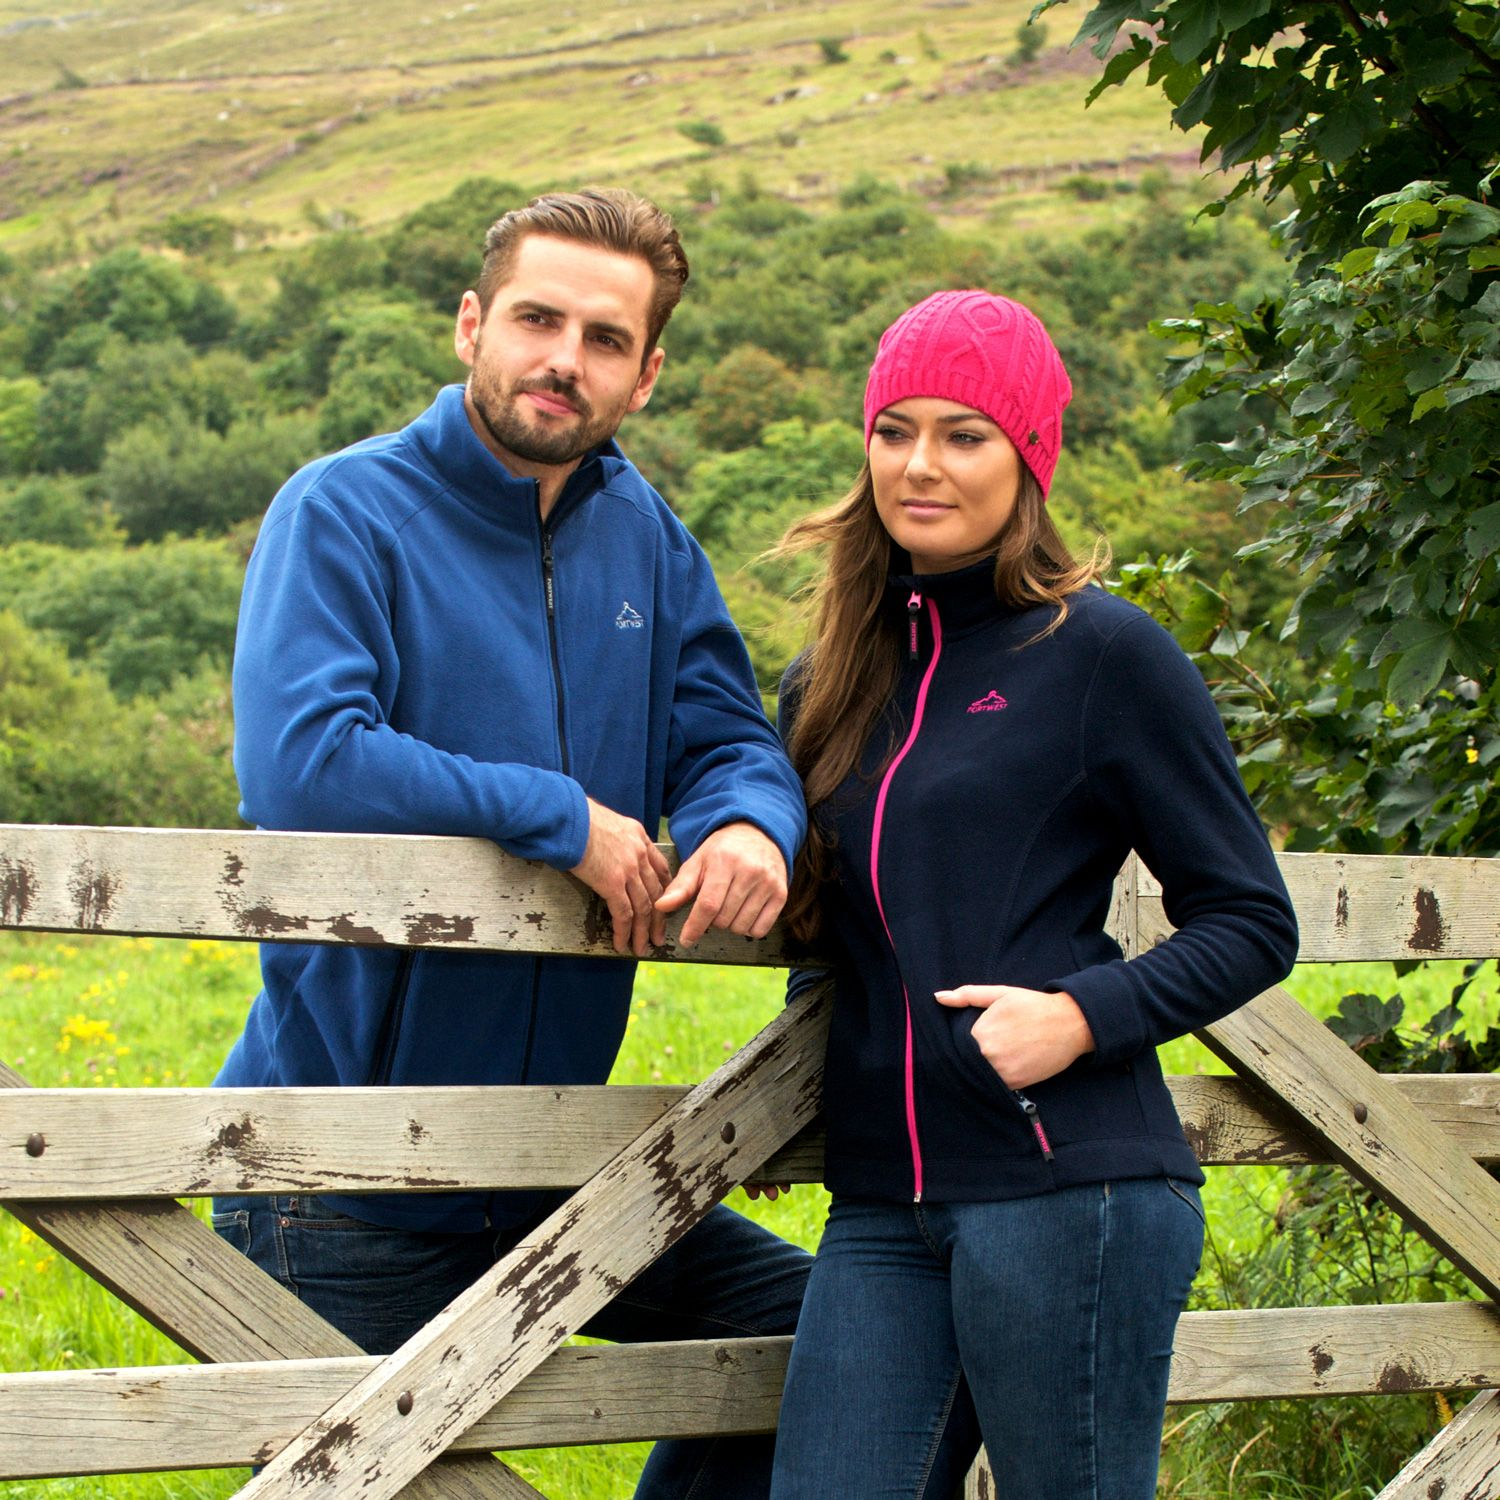 Portwest Lee Microfleece - MP51 The Lee Microfleece is perfect for taking the chill off a windy day. With a full zip, it's easy to grab and throw on as you're on the way out the door. #portwest #westport #ireland #outdoor #mensfleece #microfleece #hiking #walking #ladiesfleece